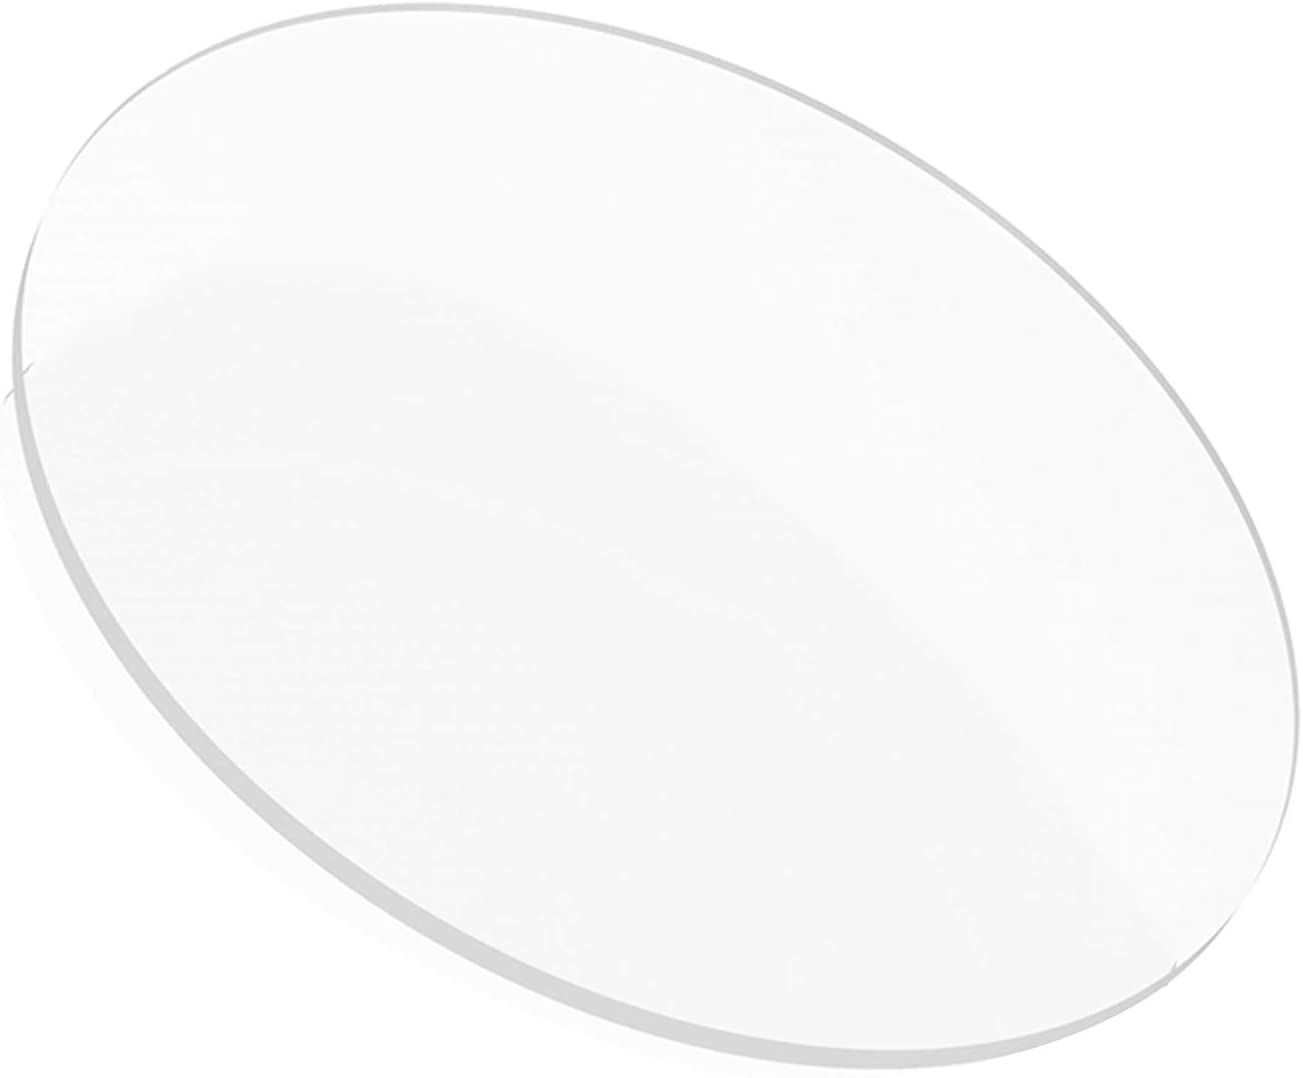 10cm//3.9inch,Diameter MHUI Clear Acrylic Sheet Perspex Board 5mm Thickness for DIY Craft Advertisement Making,Diameter 10 cm